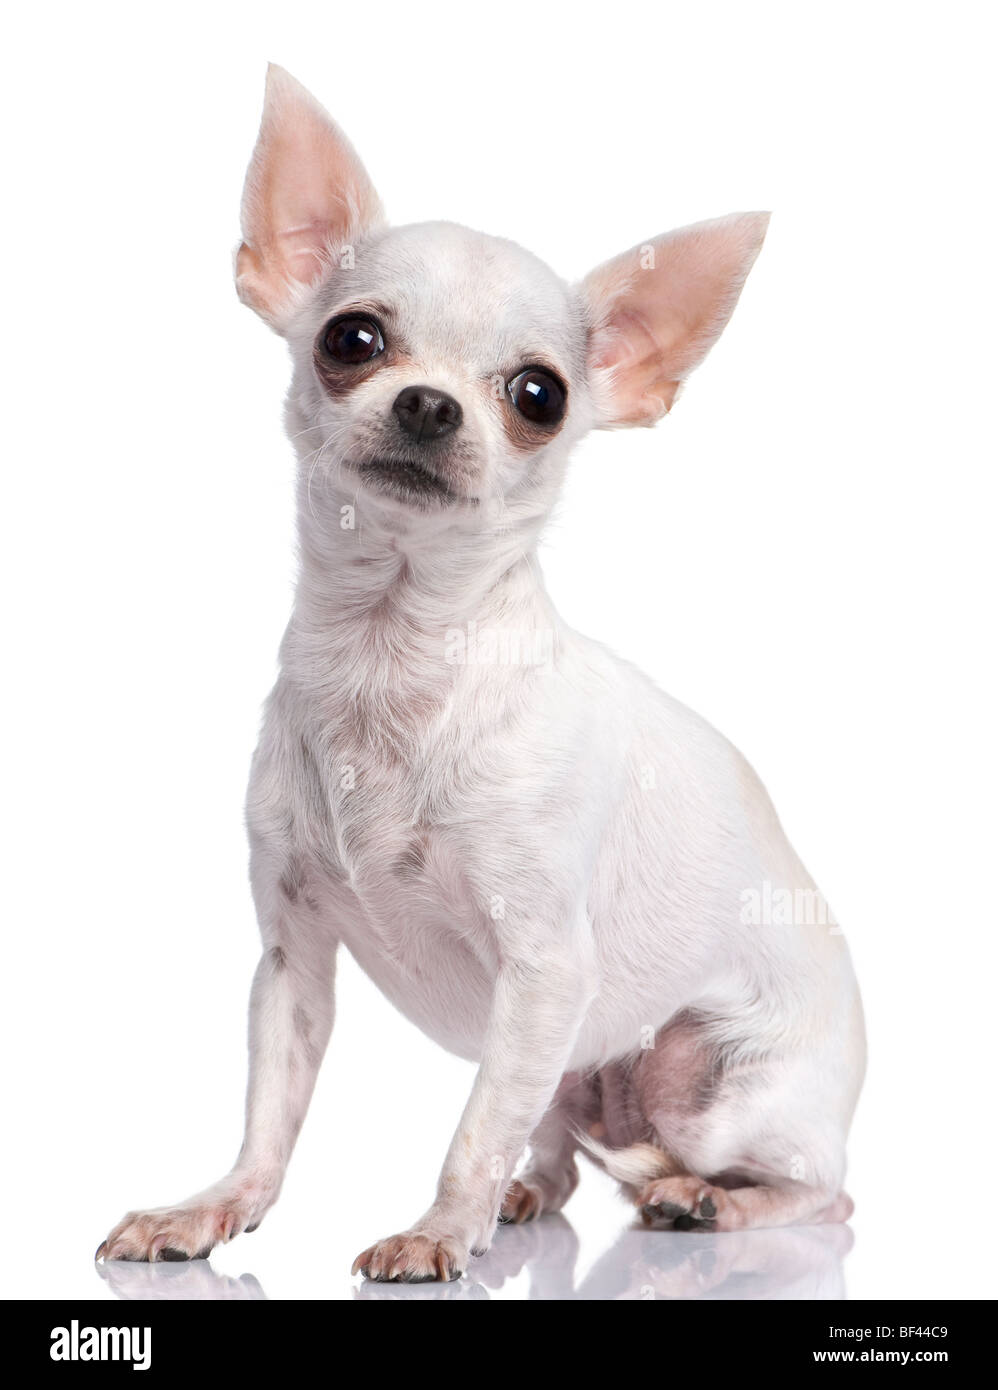 White chihuahua, 3 years old, sitting in front of a white background, studio shot Stock Photo